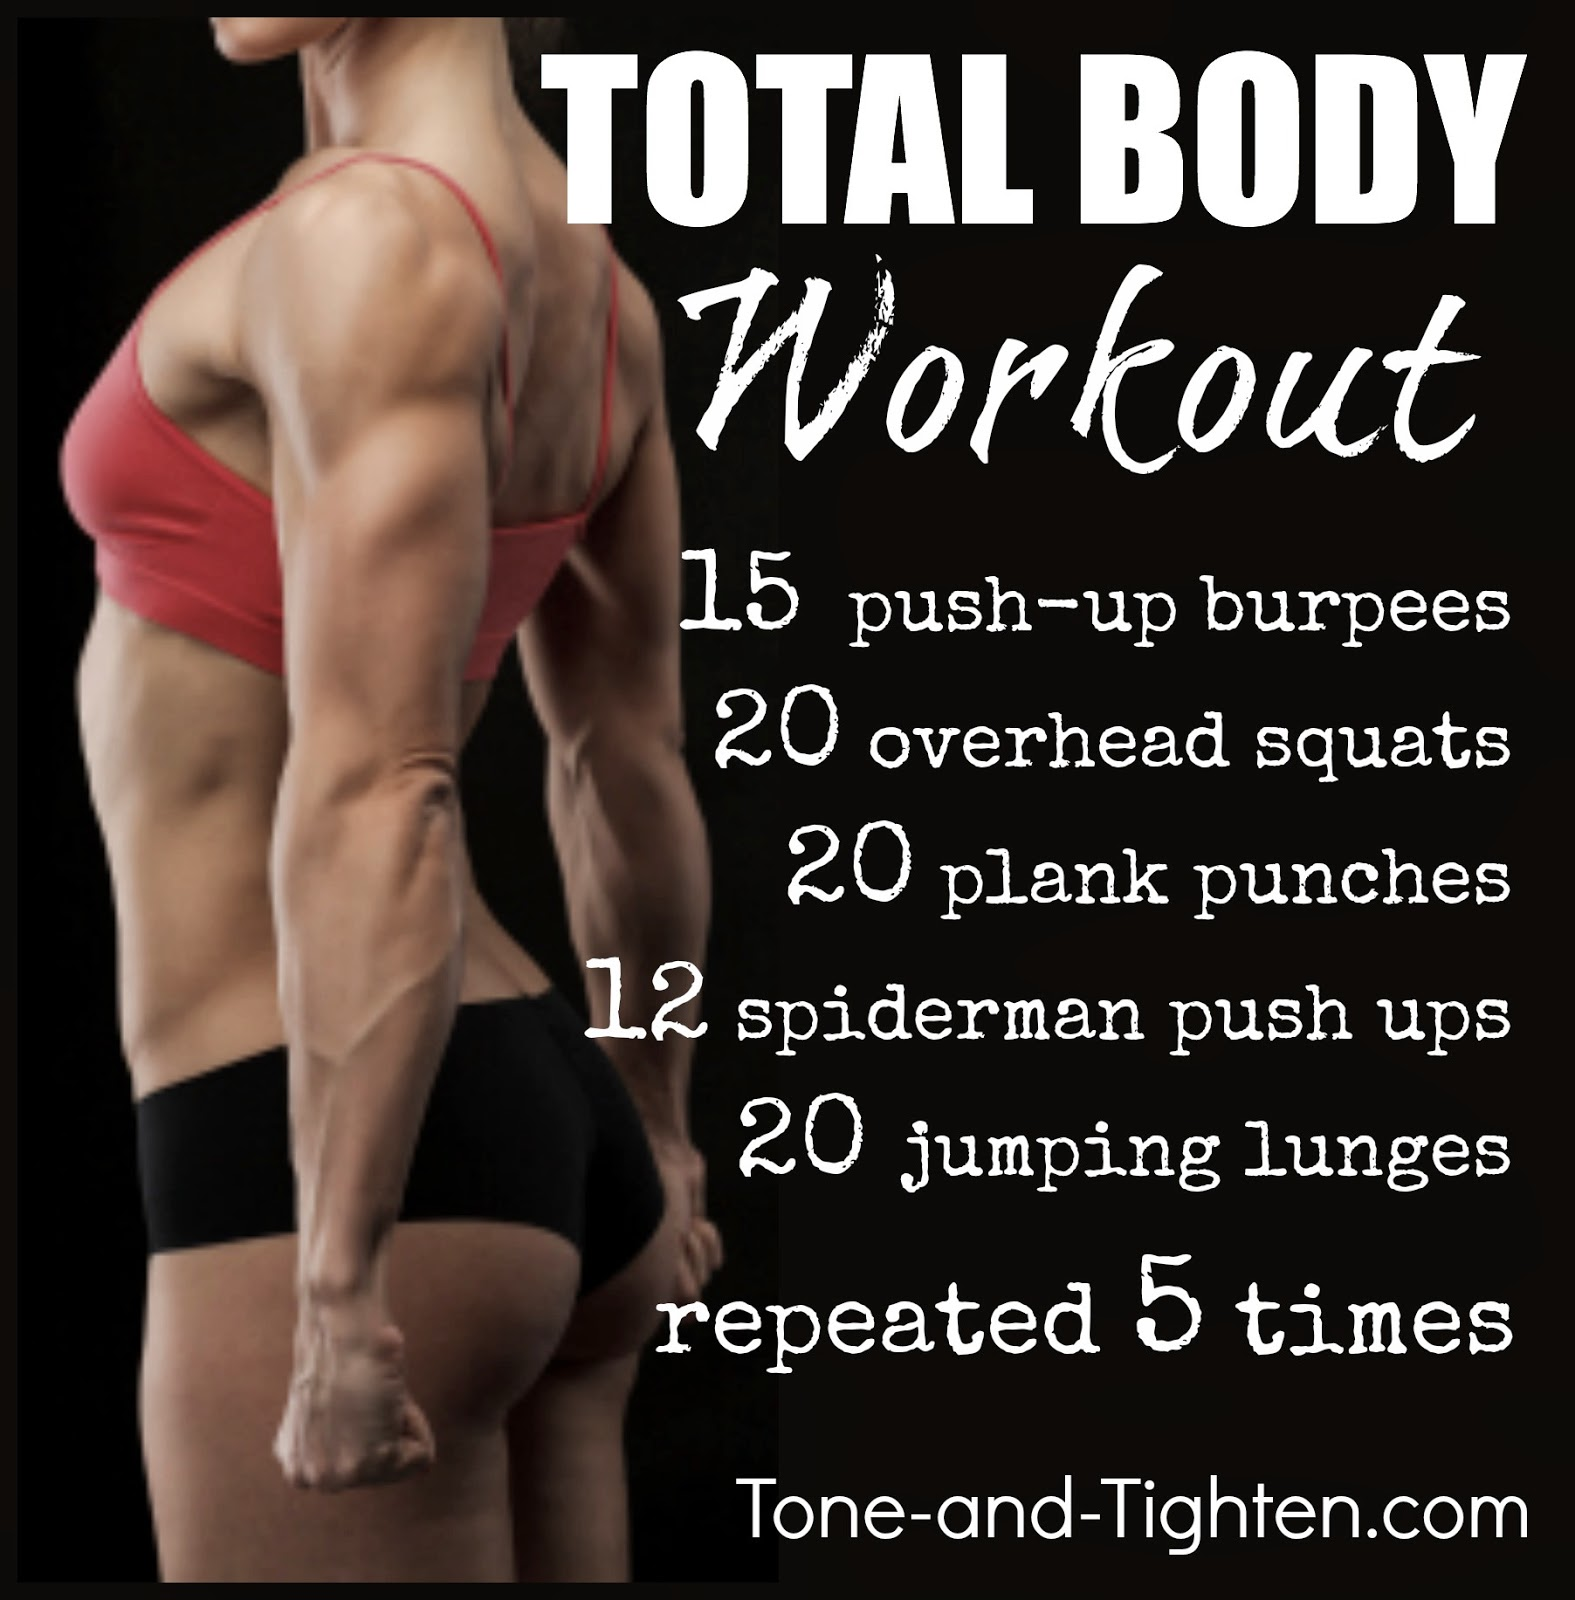 http://tone-and-tighten.com/2013/12/12-days-of-fitness-at-home-total-body-workout.html